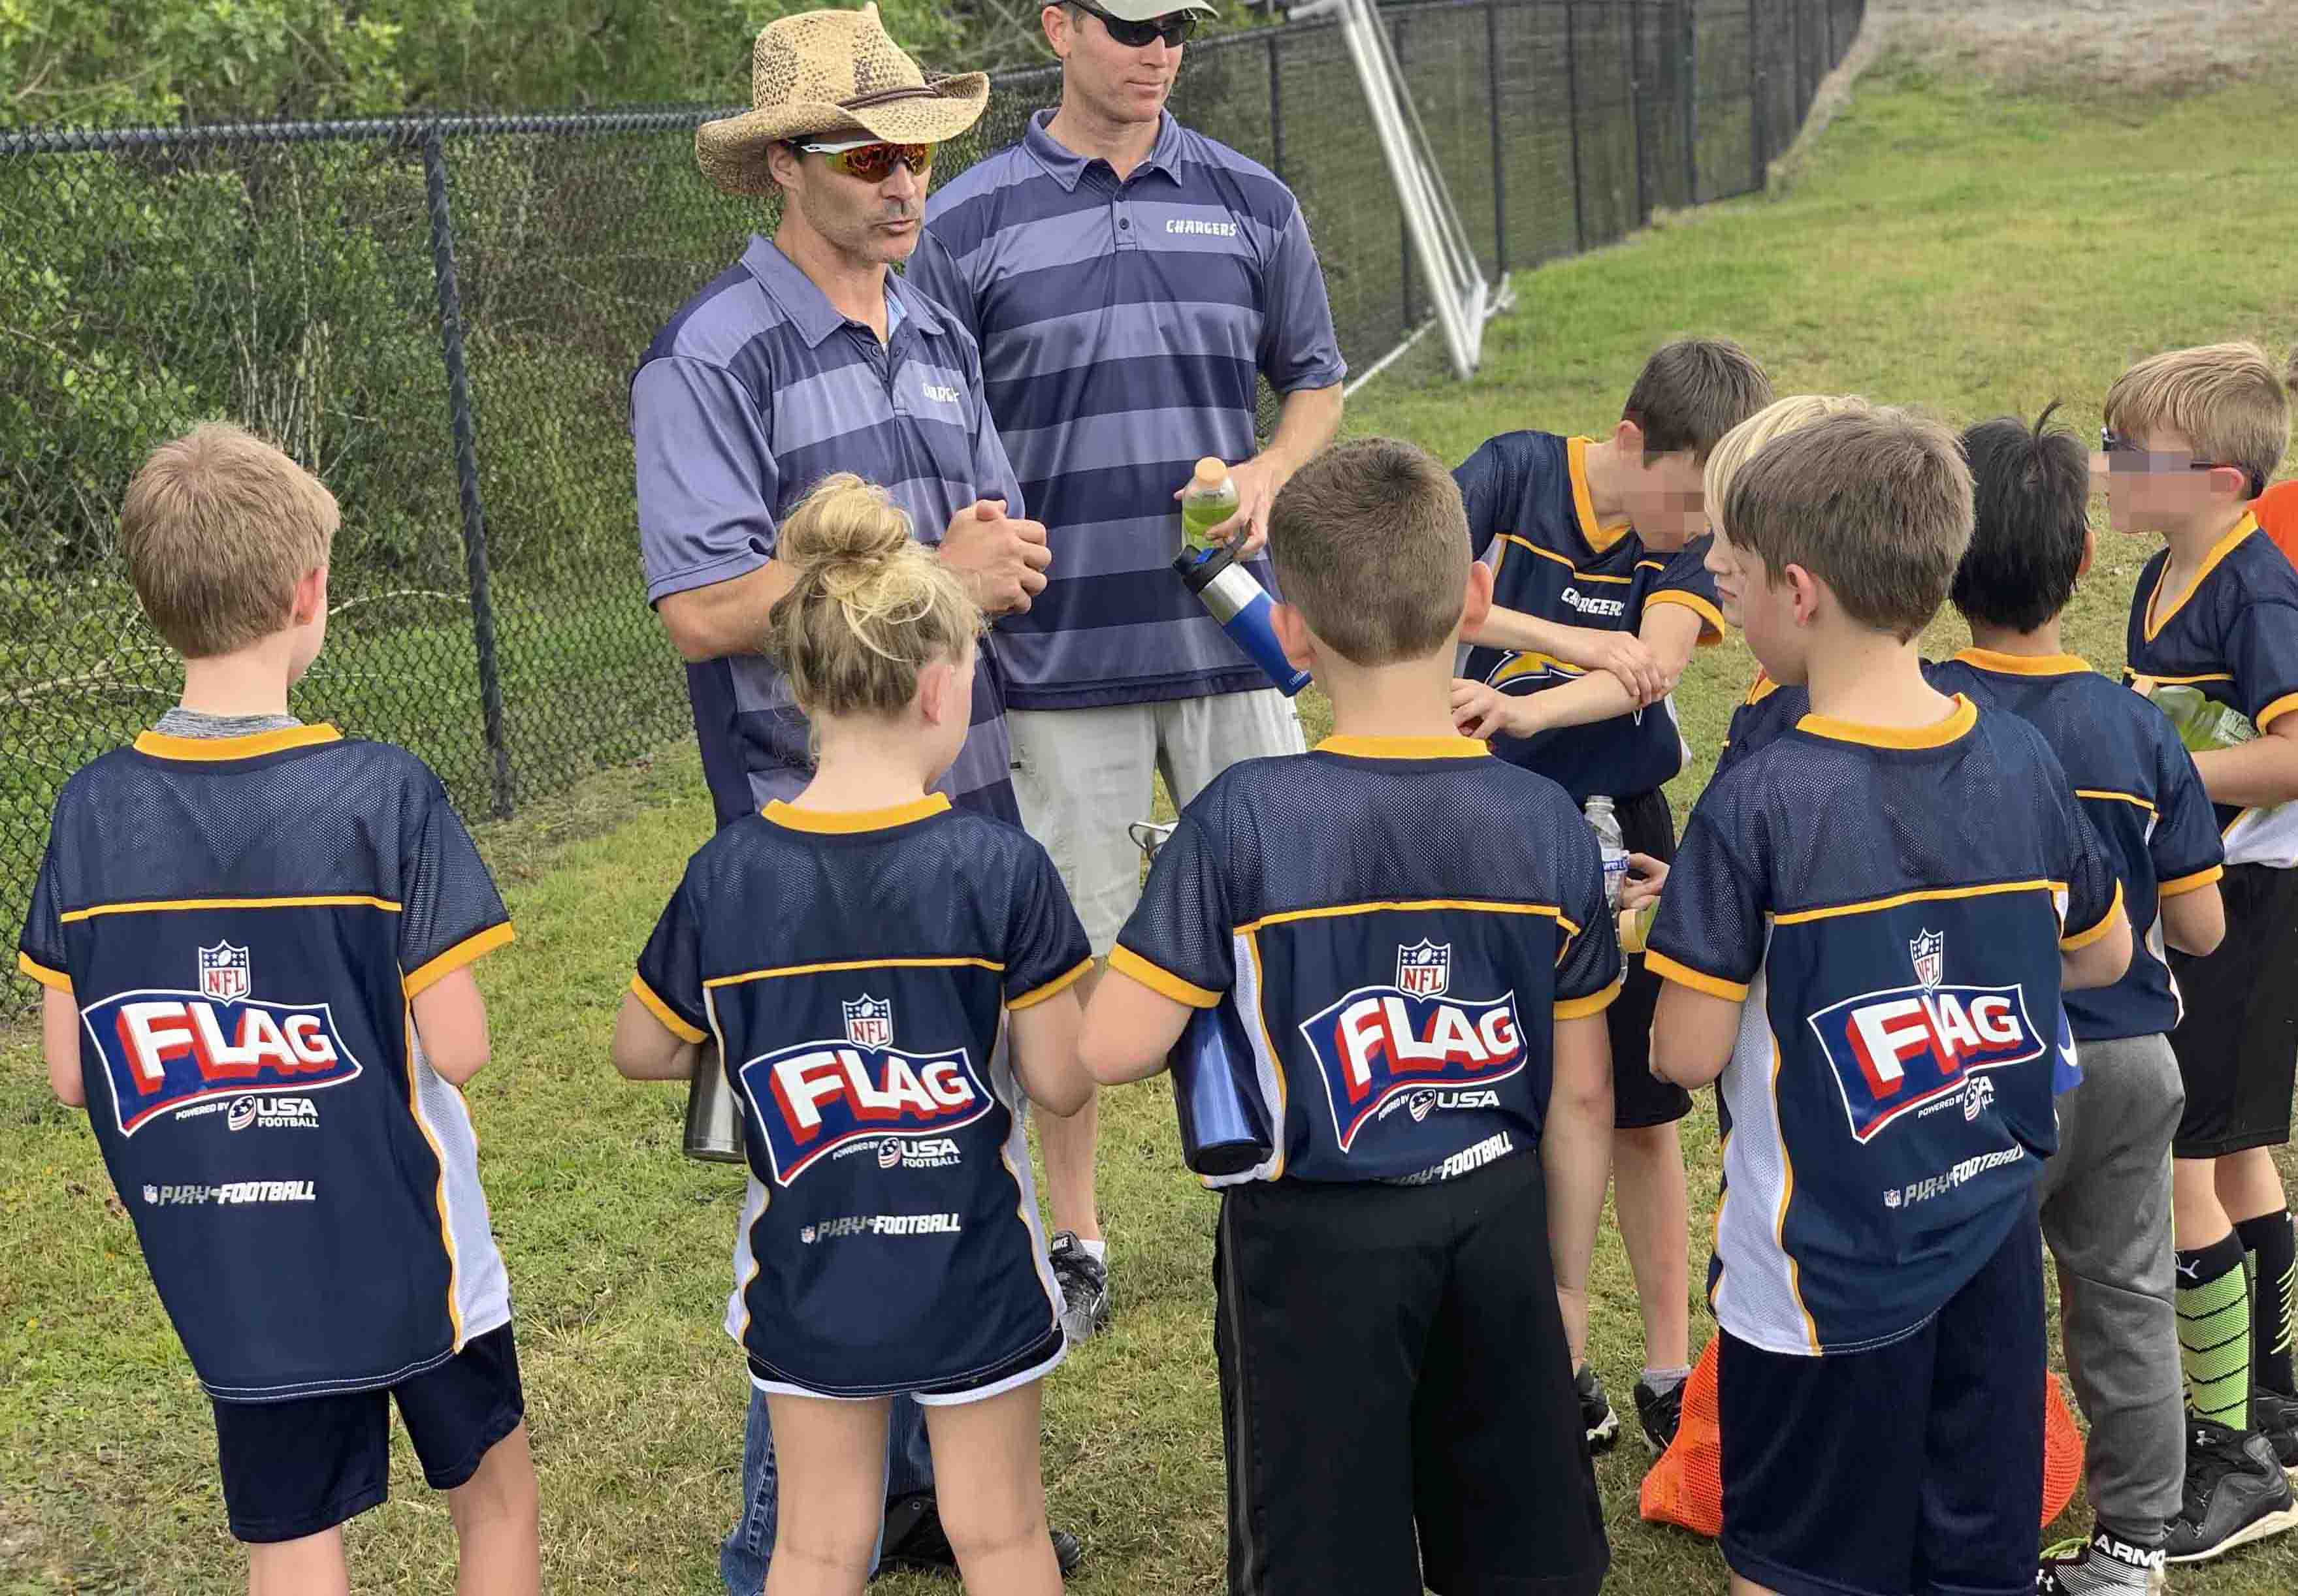 The Good, Bad and Ugly of Coaching Youth Sports